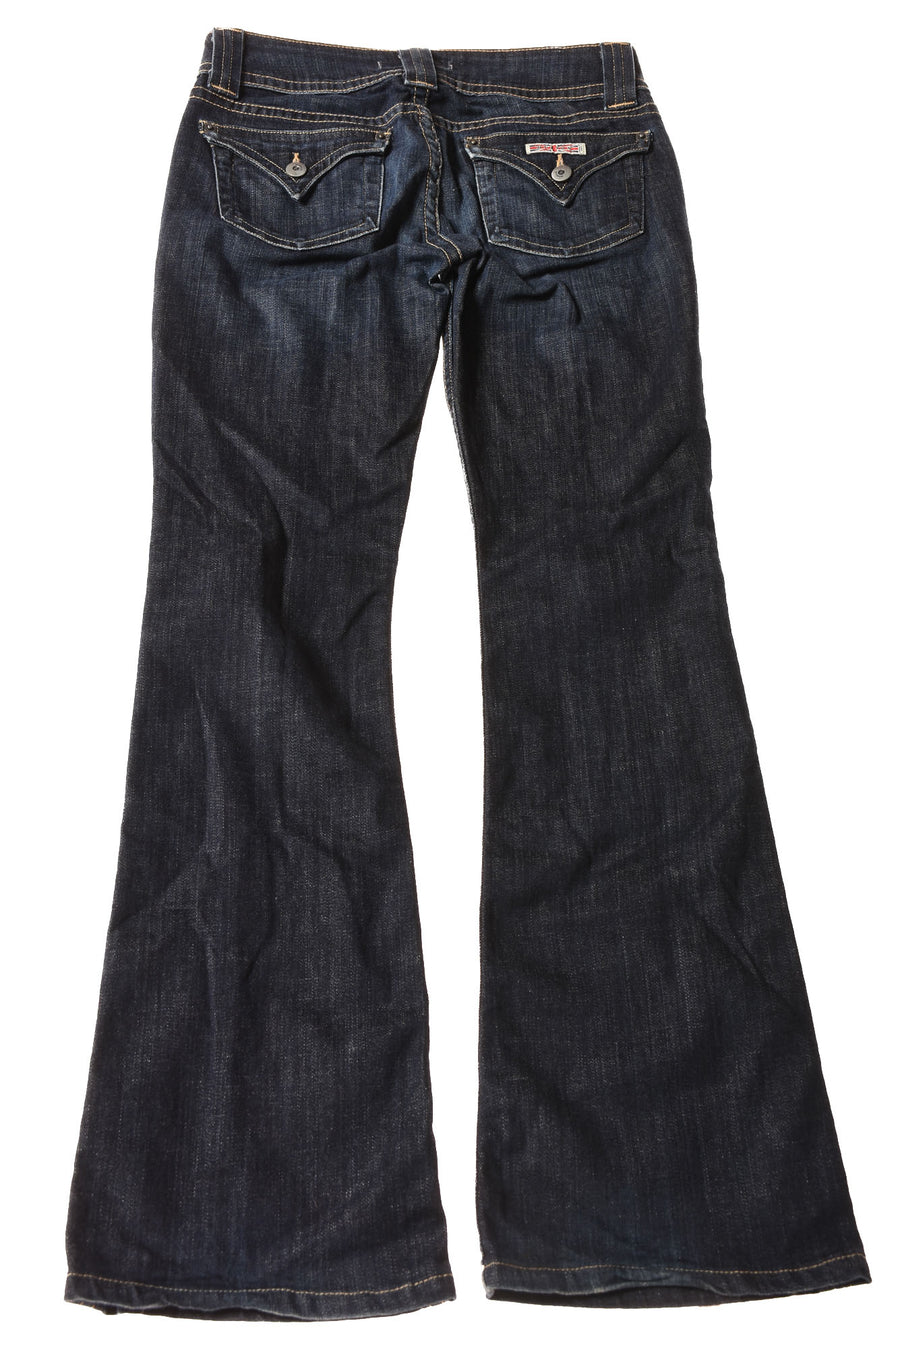 USED Hudson Women's Jeans 26W Blue